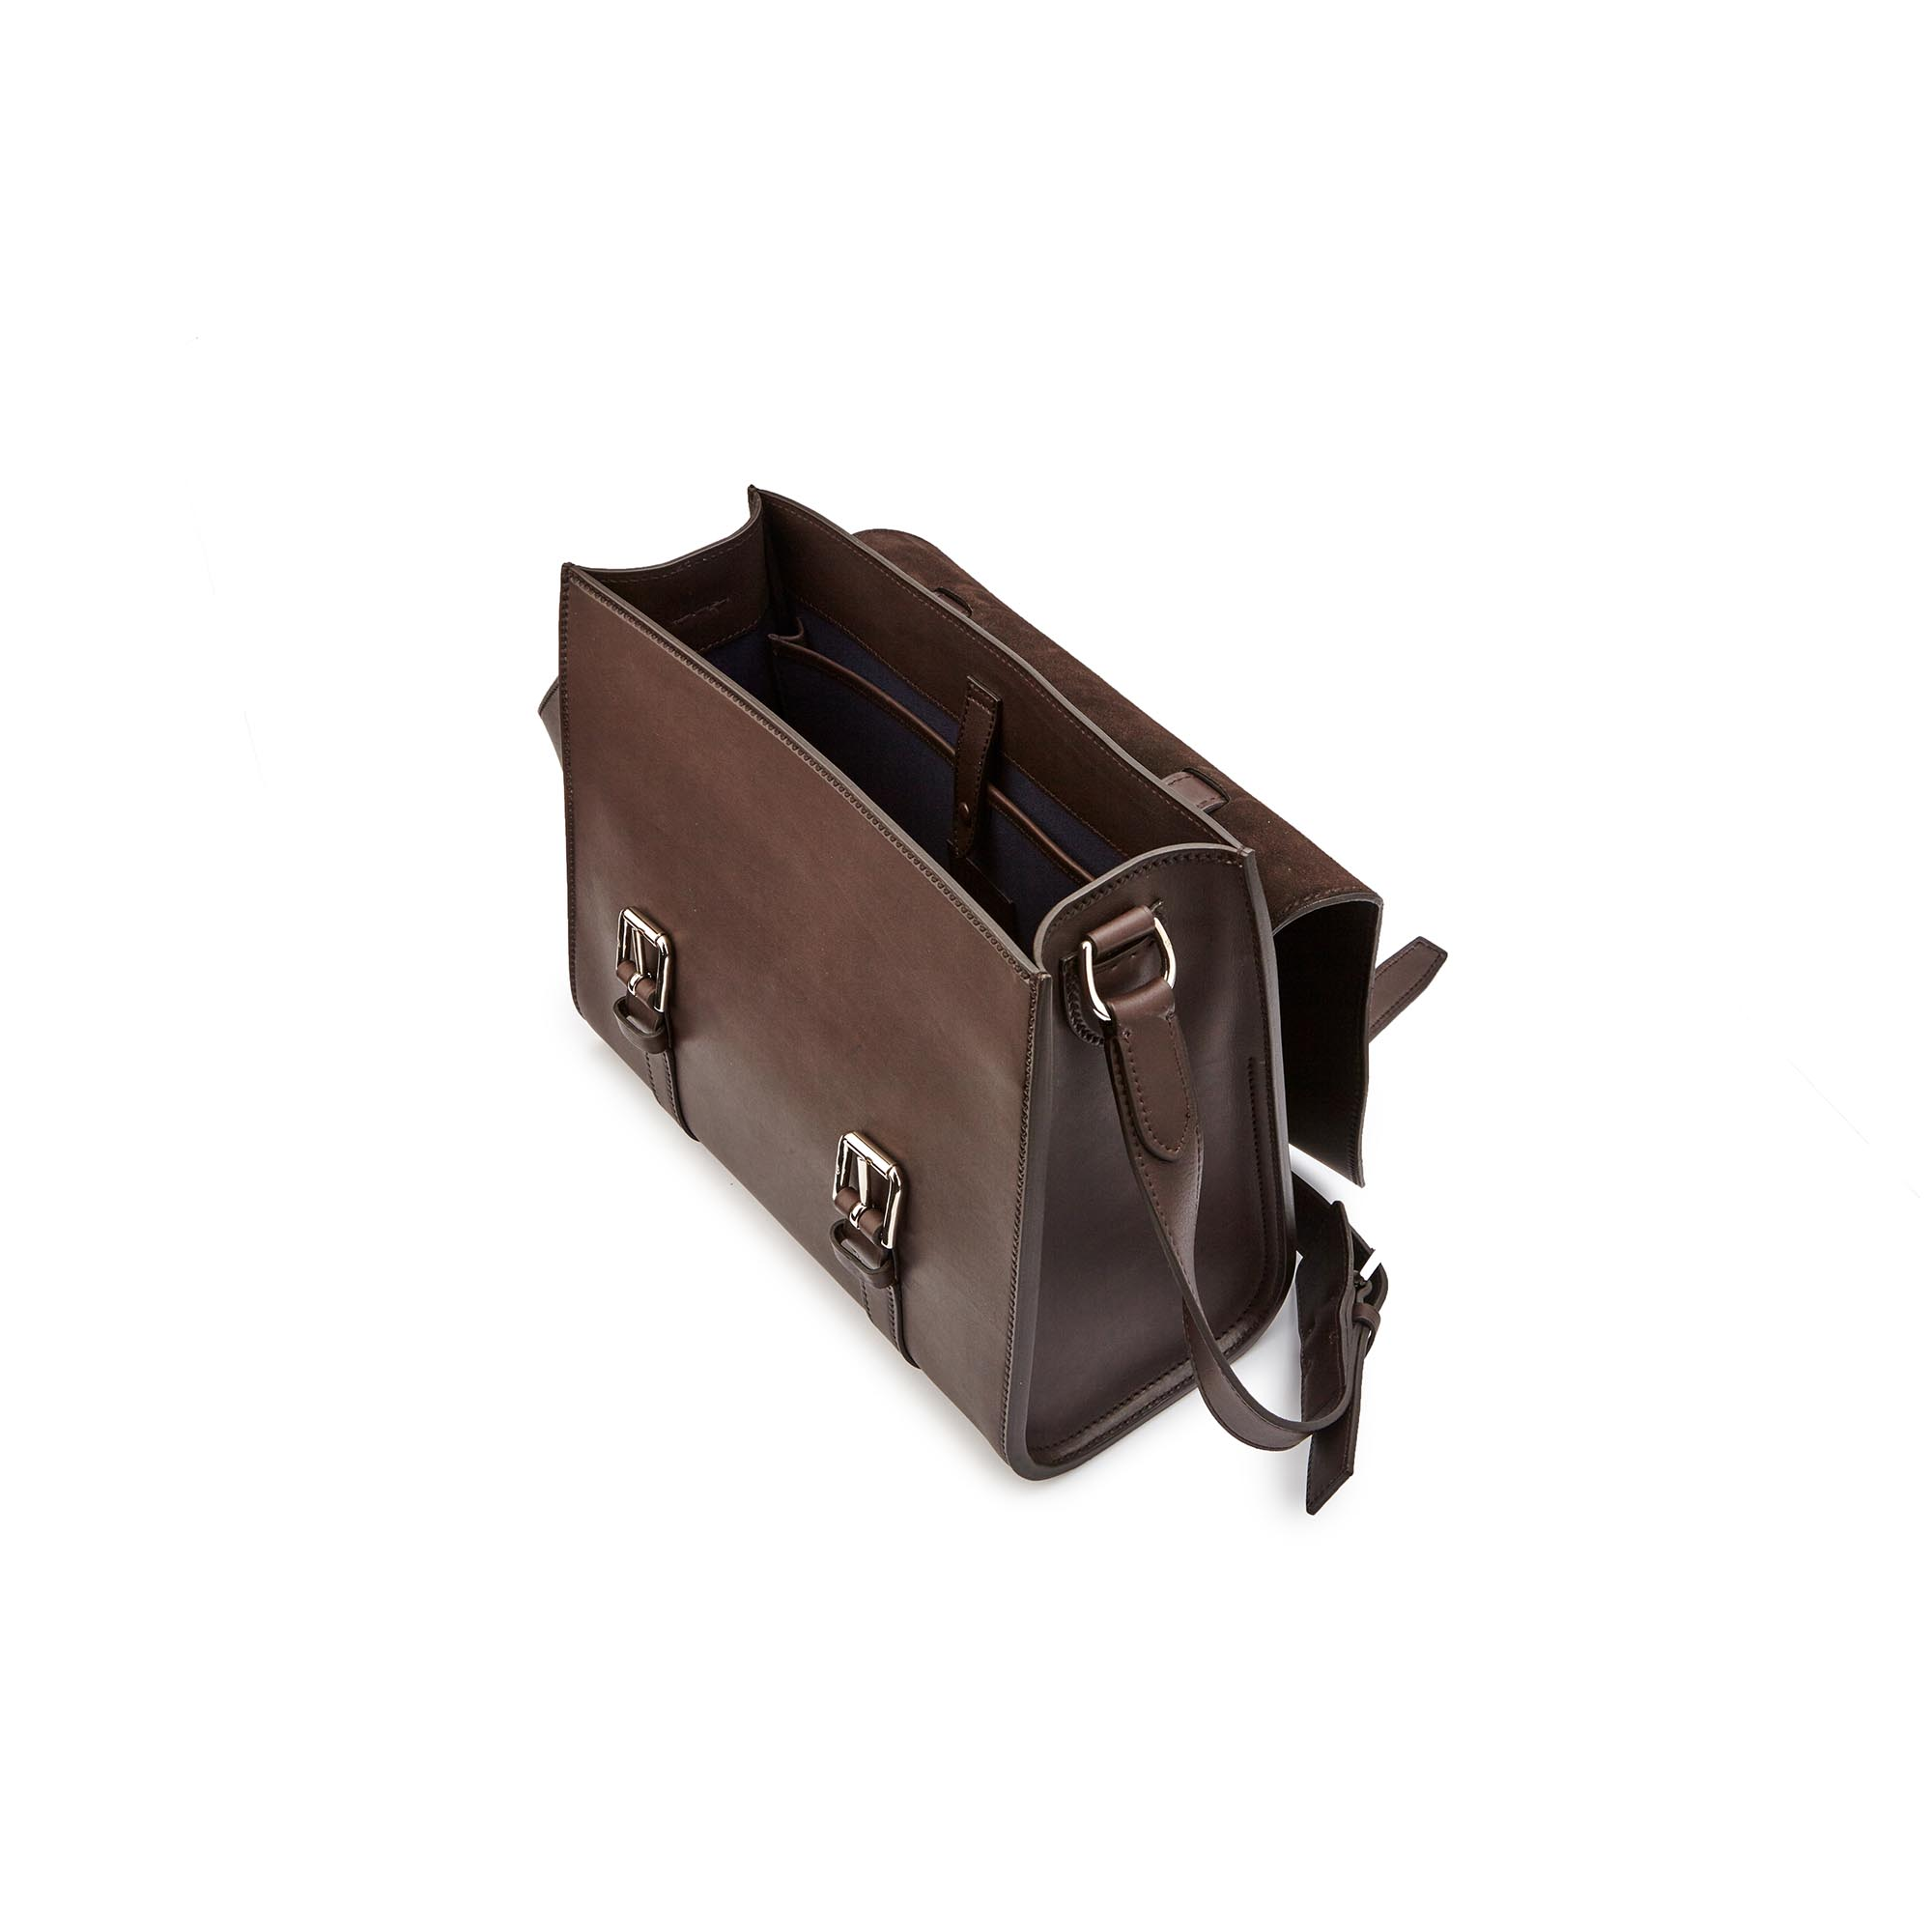 Signature-Messenger-dark-brown-french-calf-bag-Bertoni-1949_02